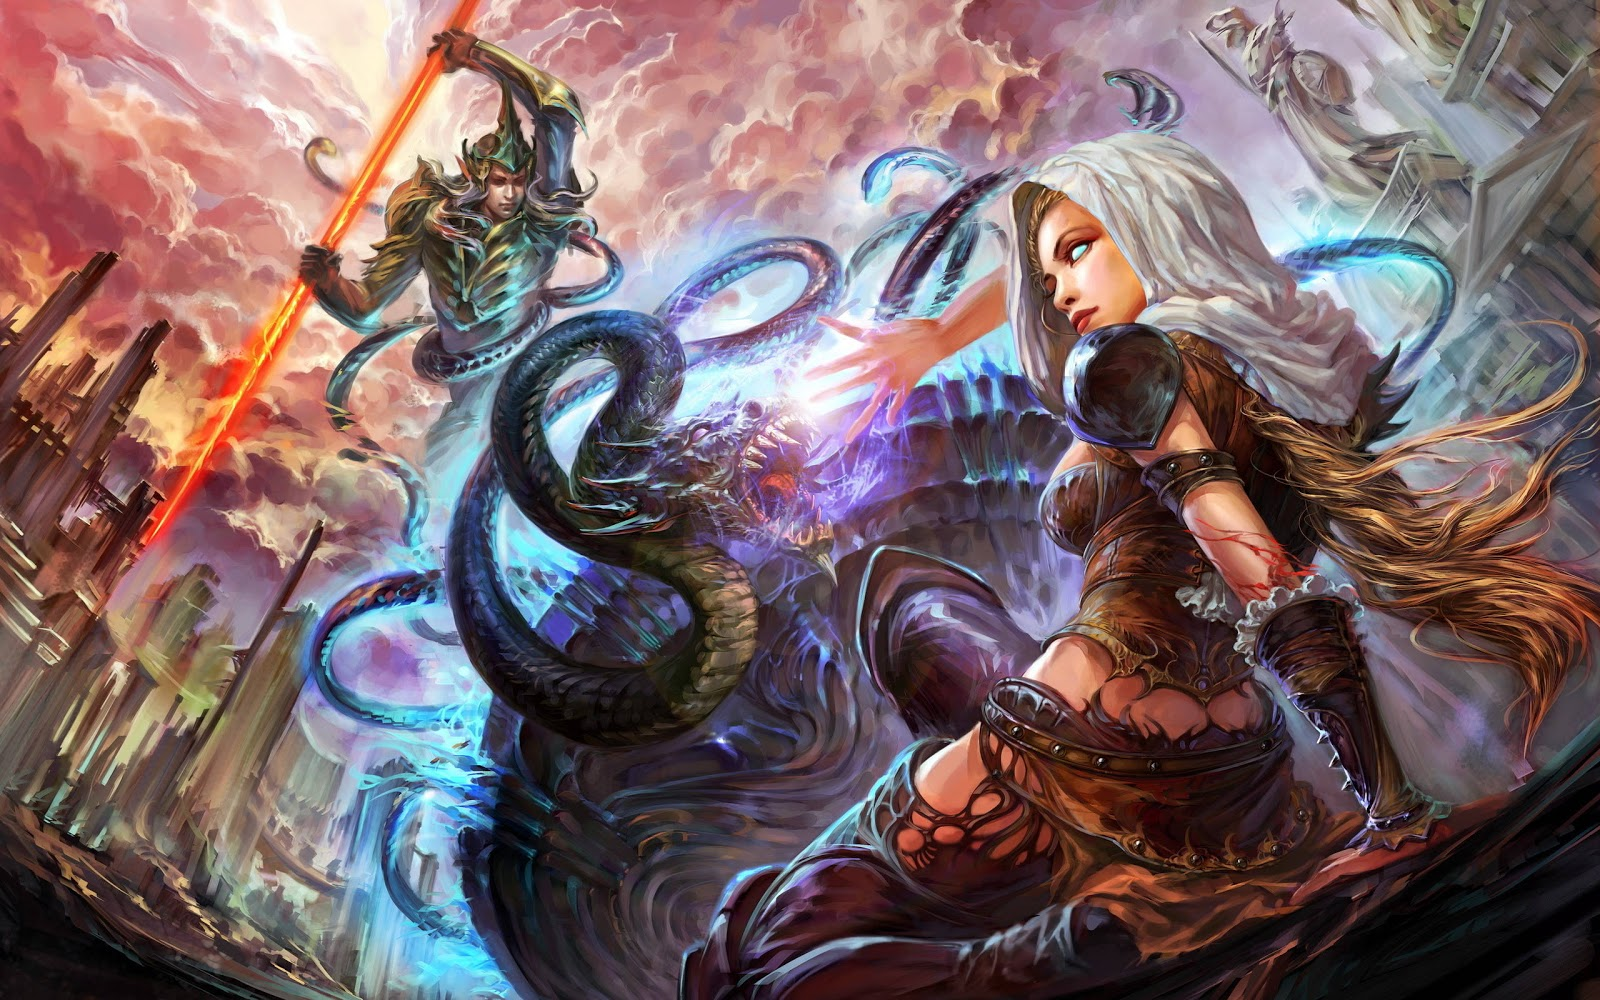 Windows 8 hd wallpapers fantasy games wallpapers - Fantasy game wallpaper ...